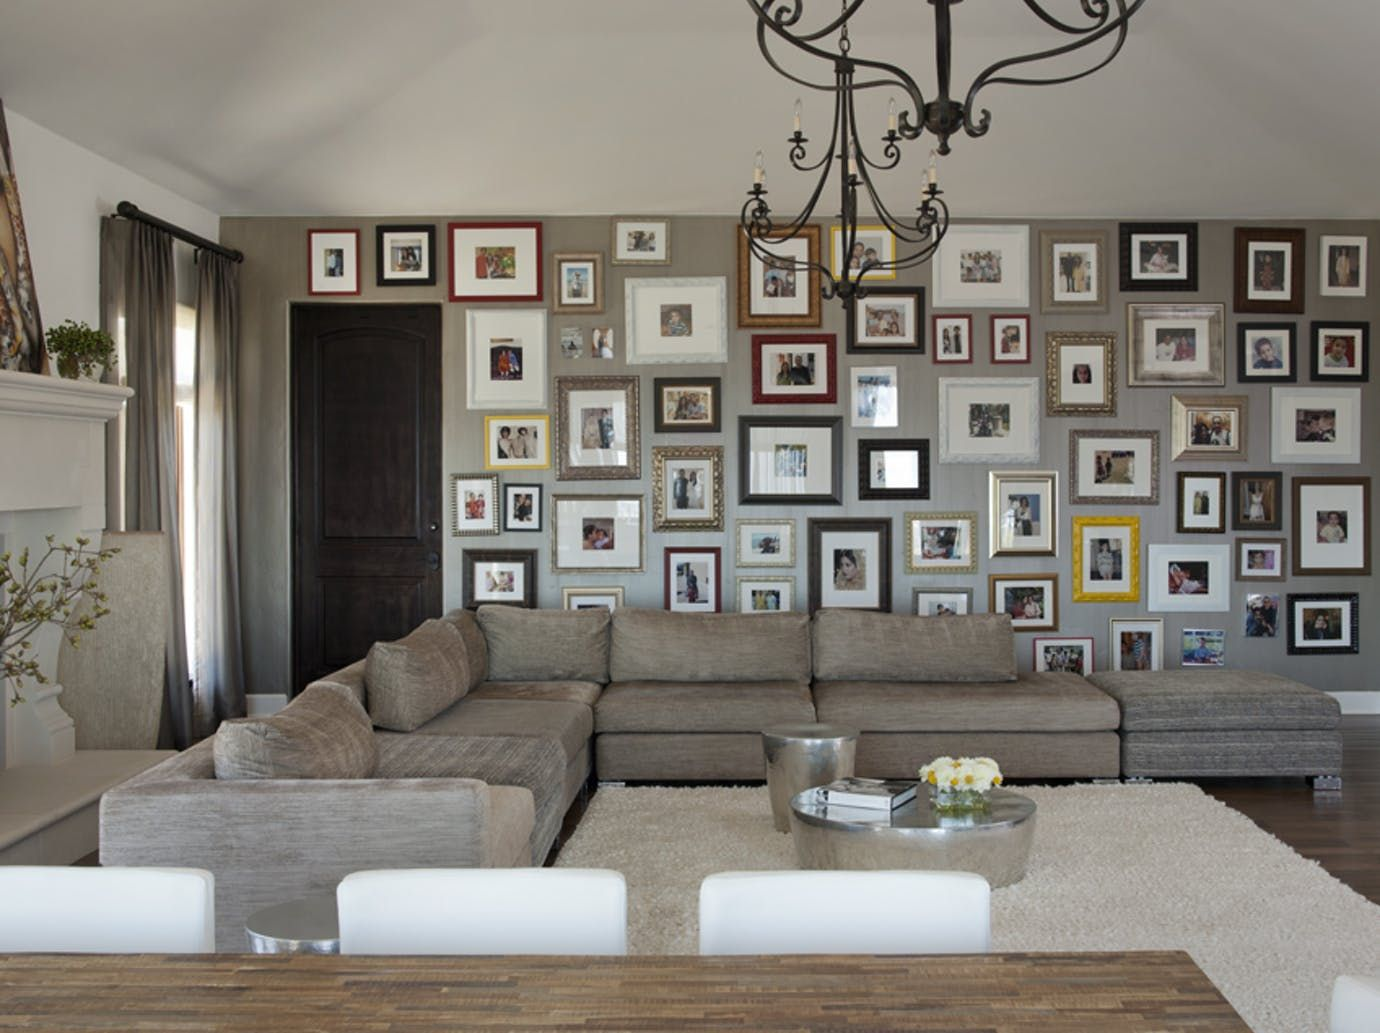 los gatos residence great room family room contemporary eclectic by lizette marie interior design - Interior Design Los Gatos